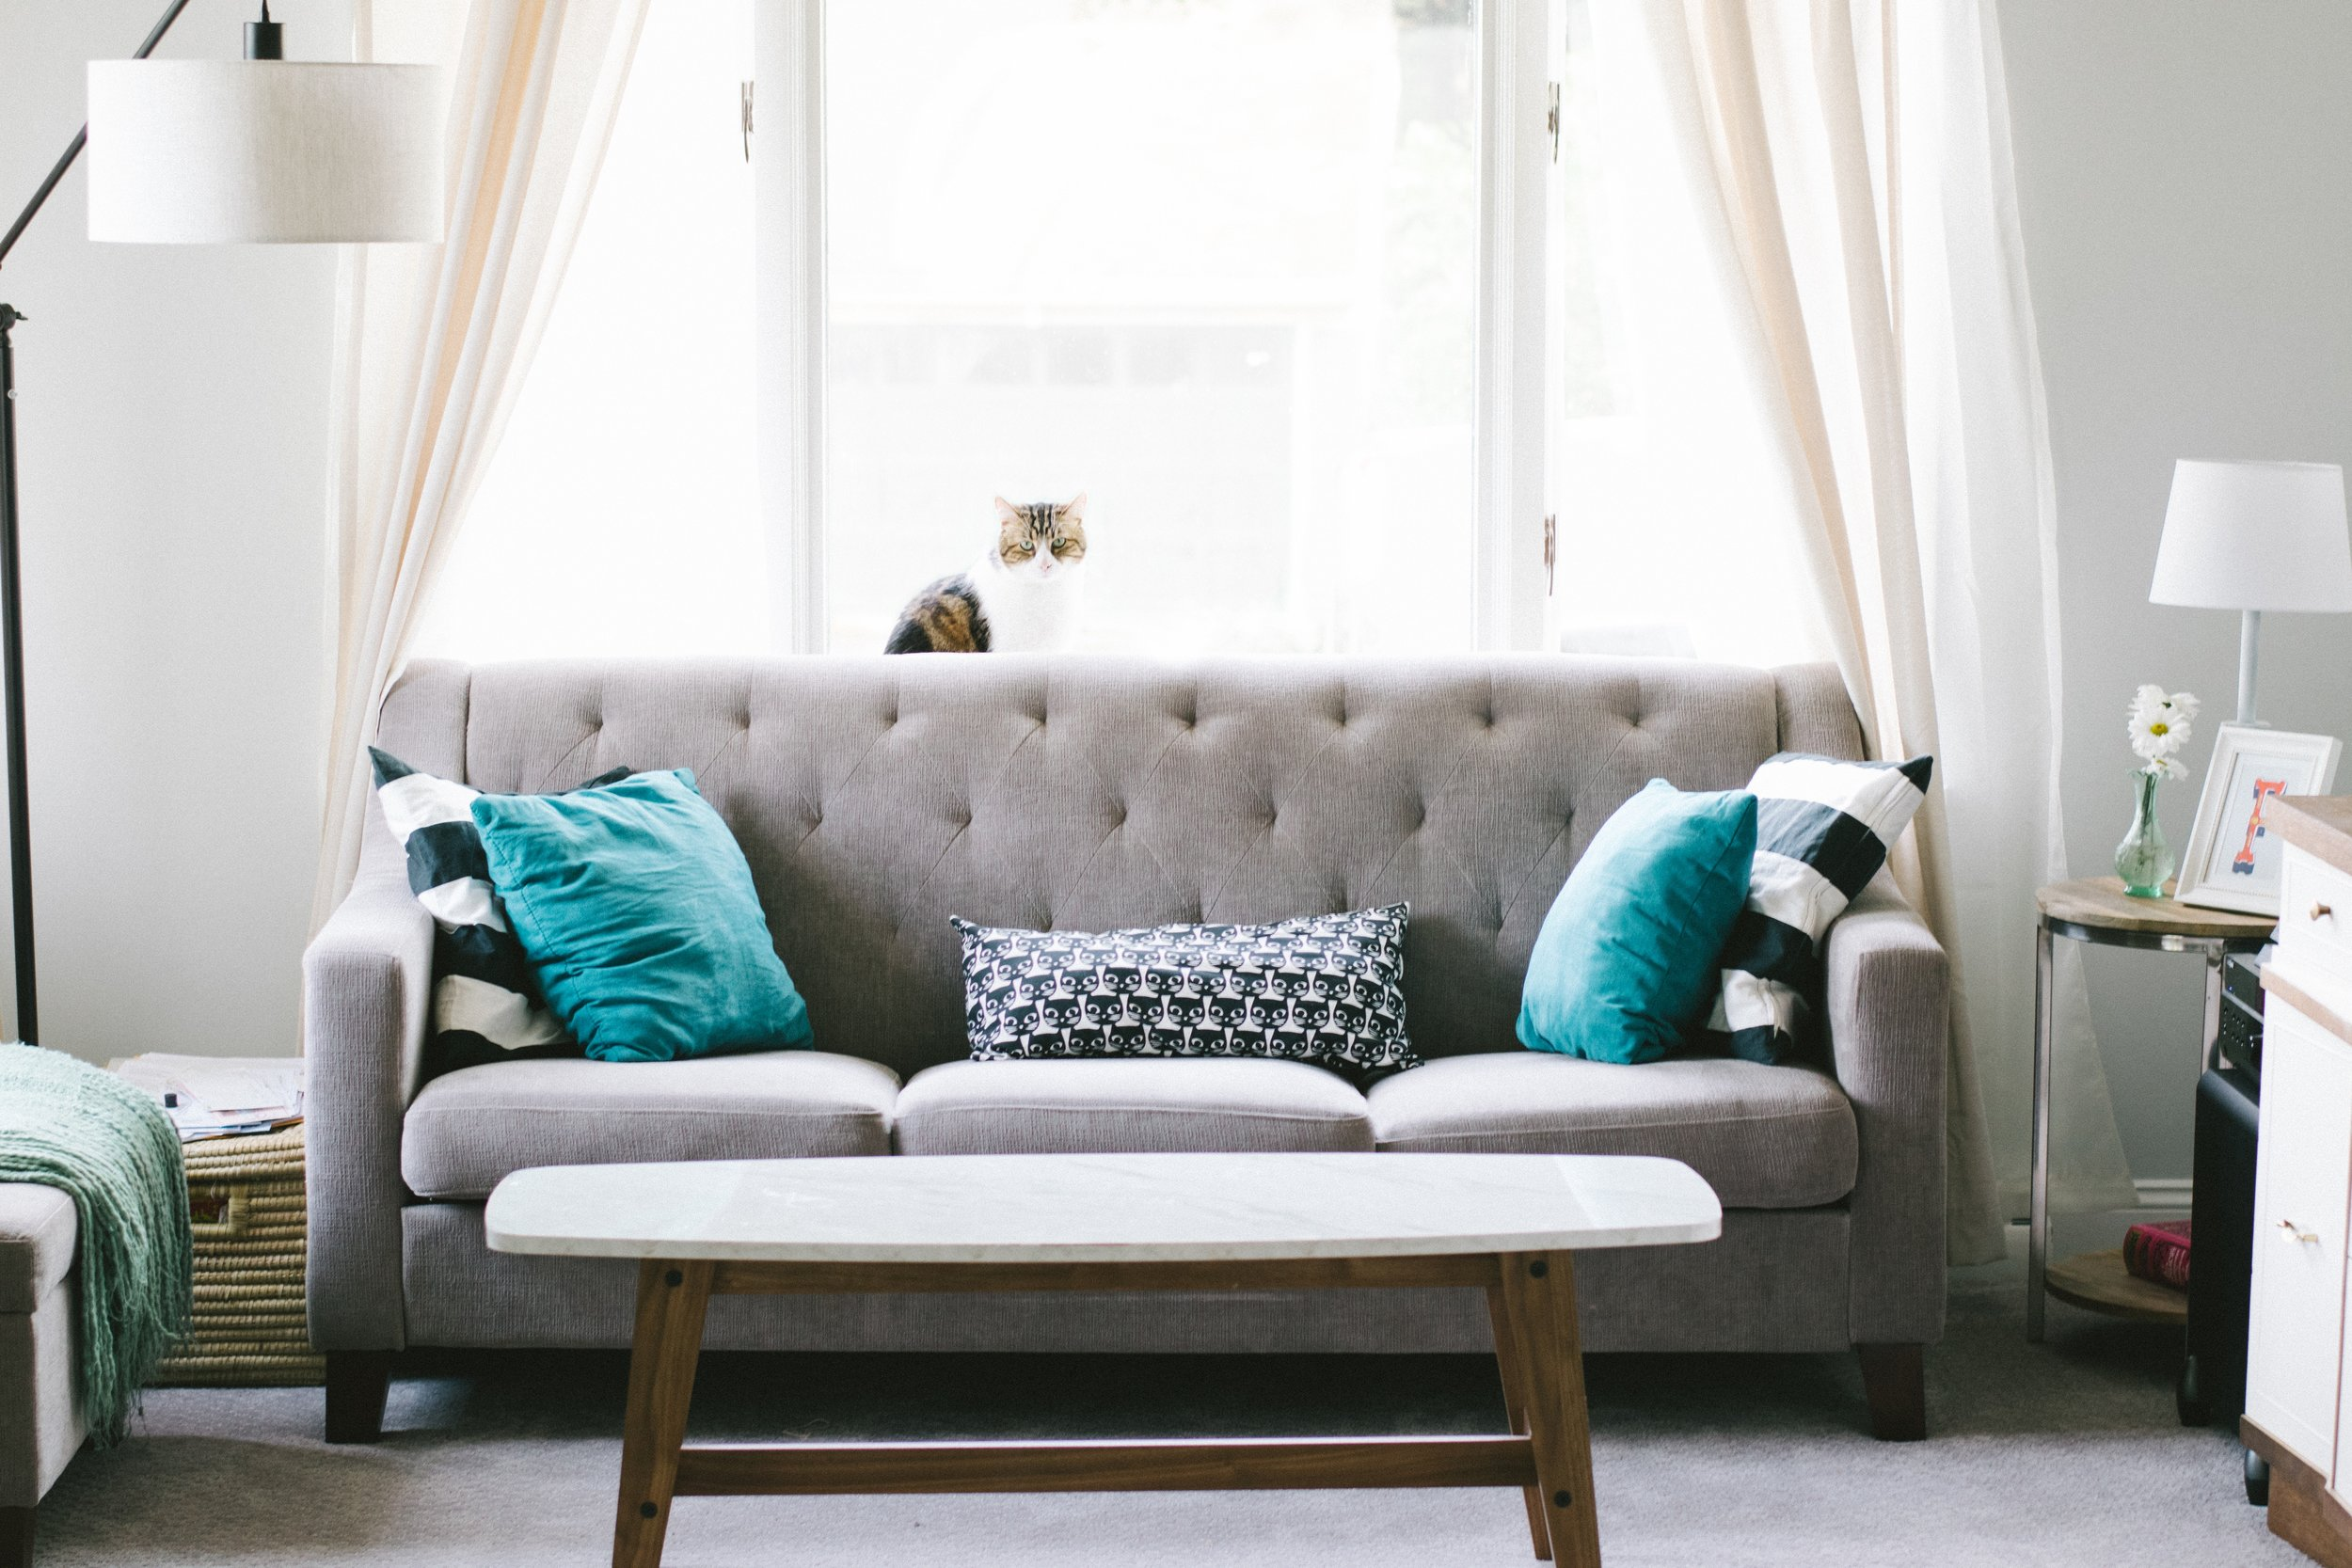 10 Amazing Coffee Table Ideas Get Quality Time